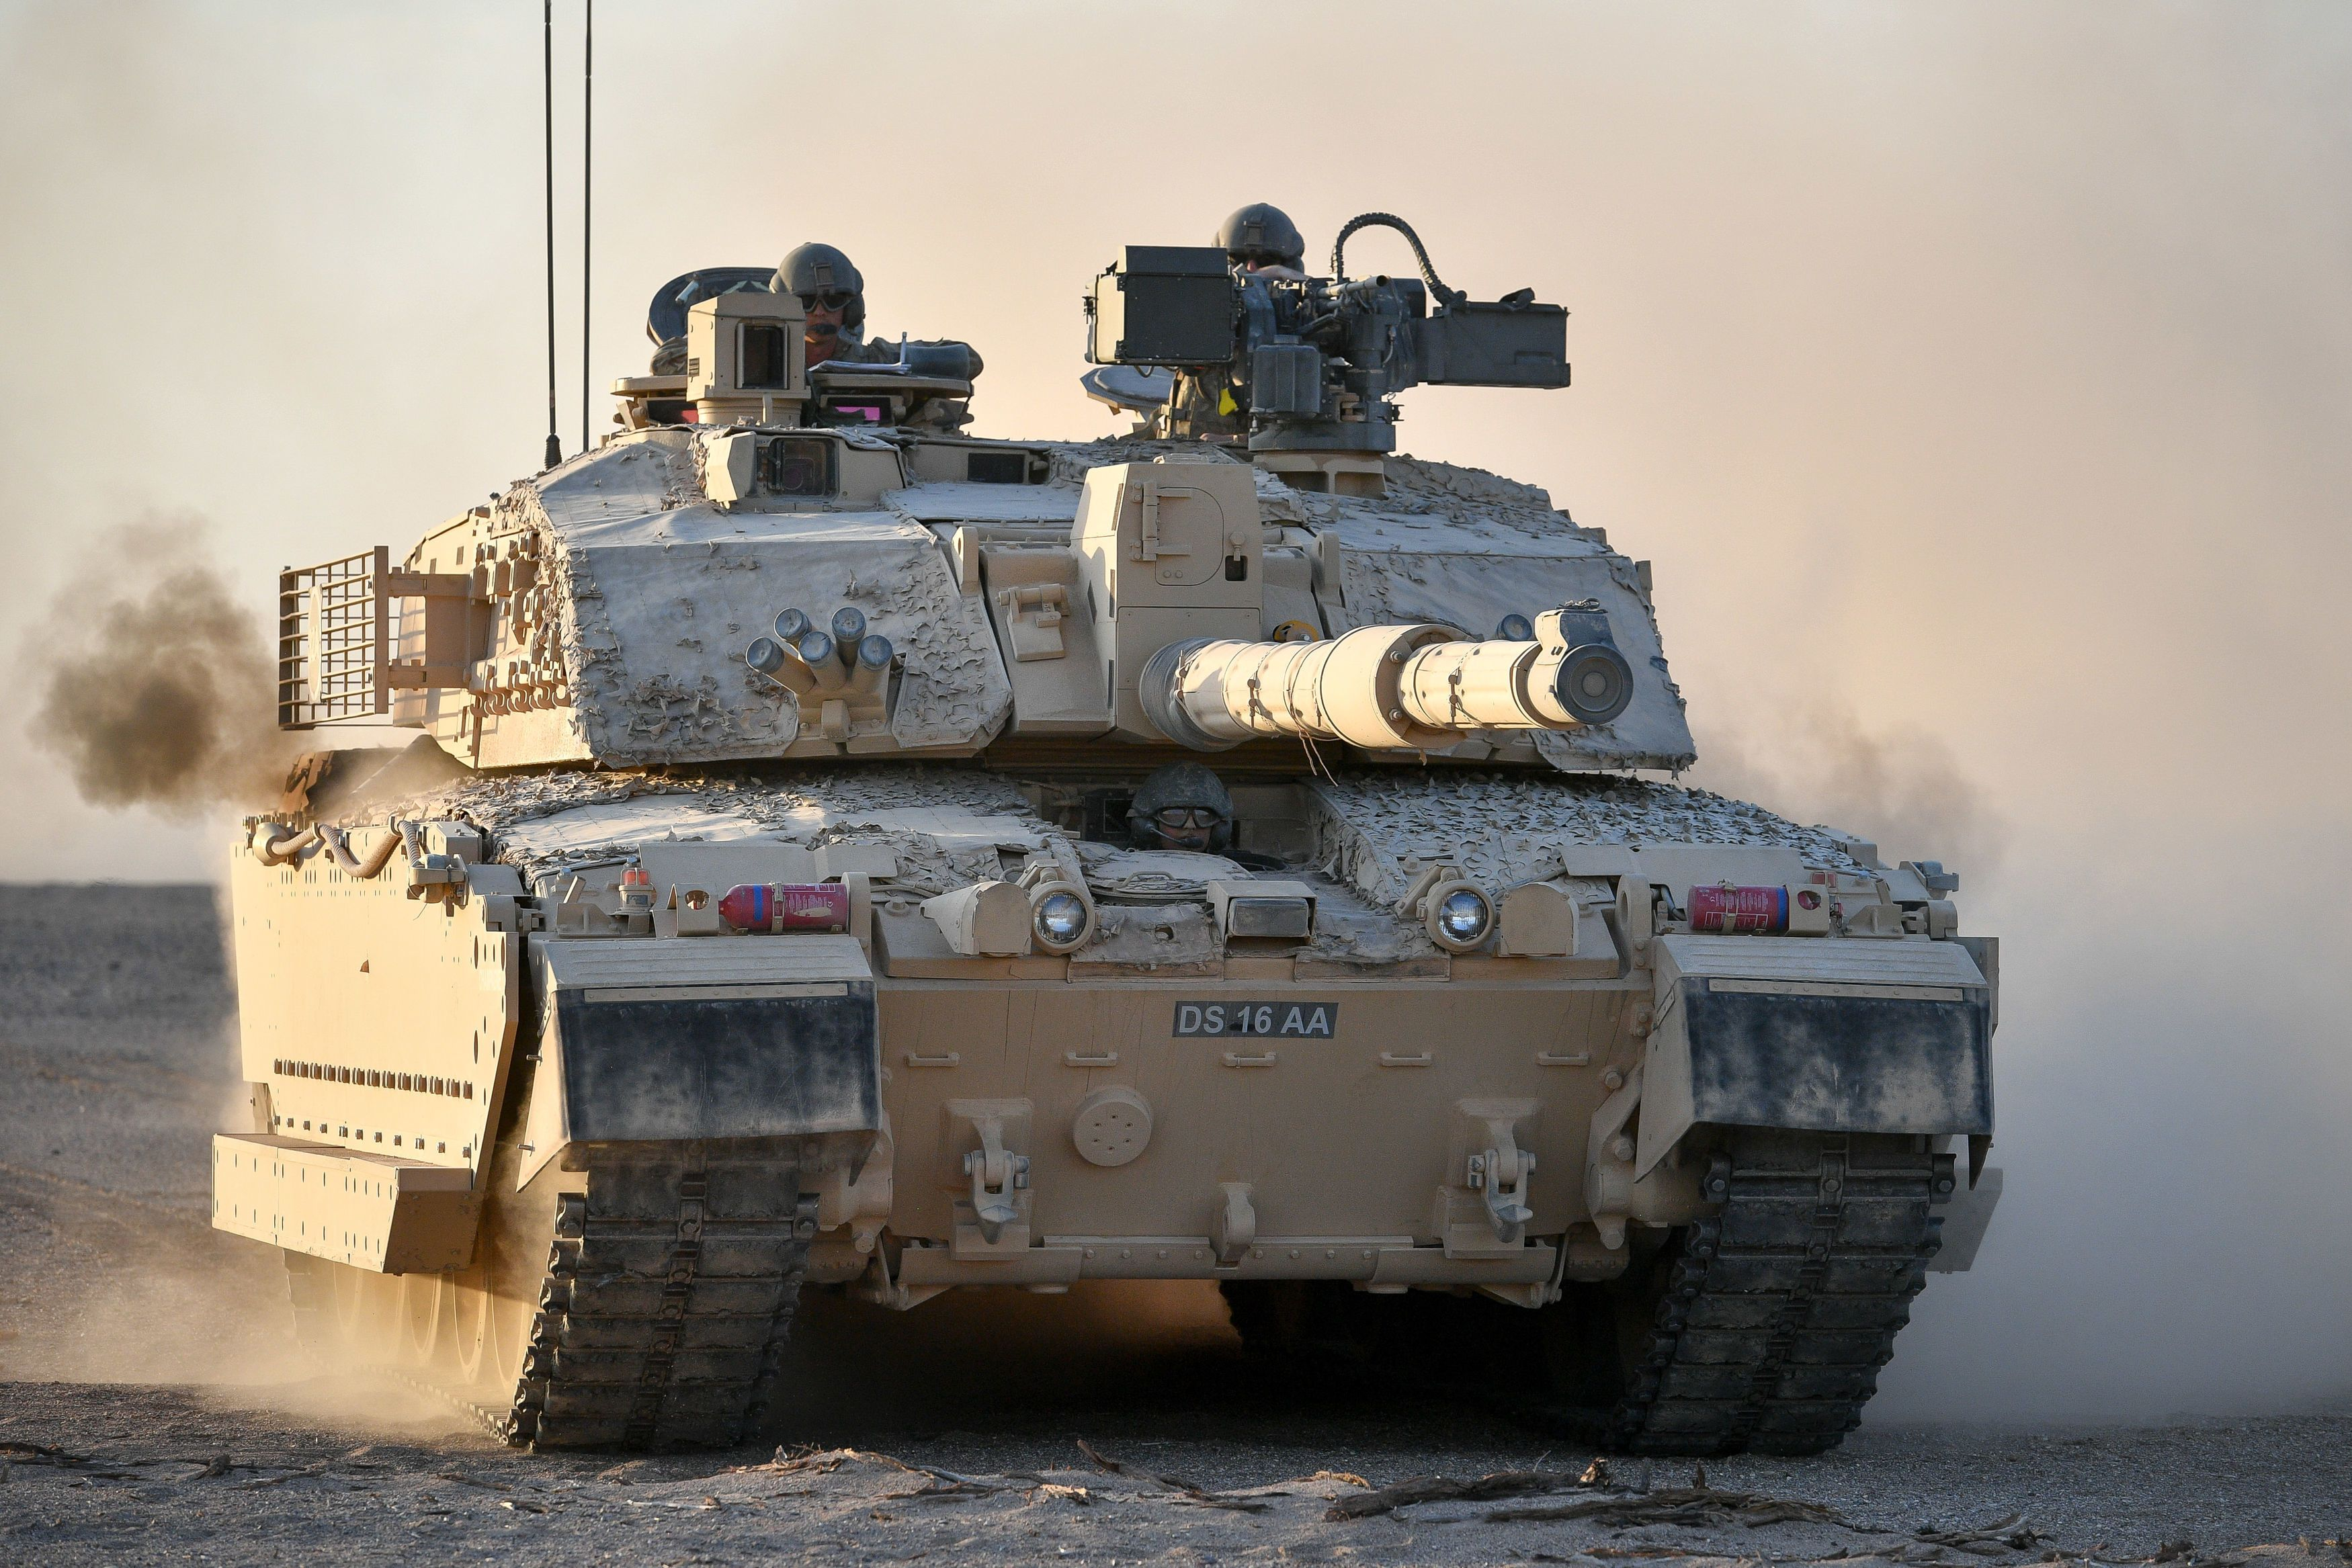 British Army Proposes Eliminating Tanks Military Tank News